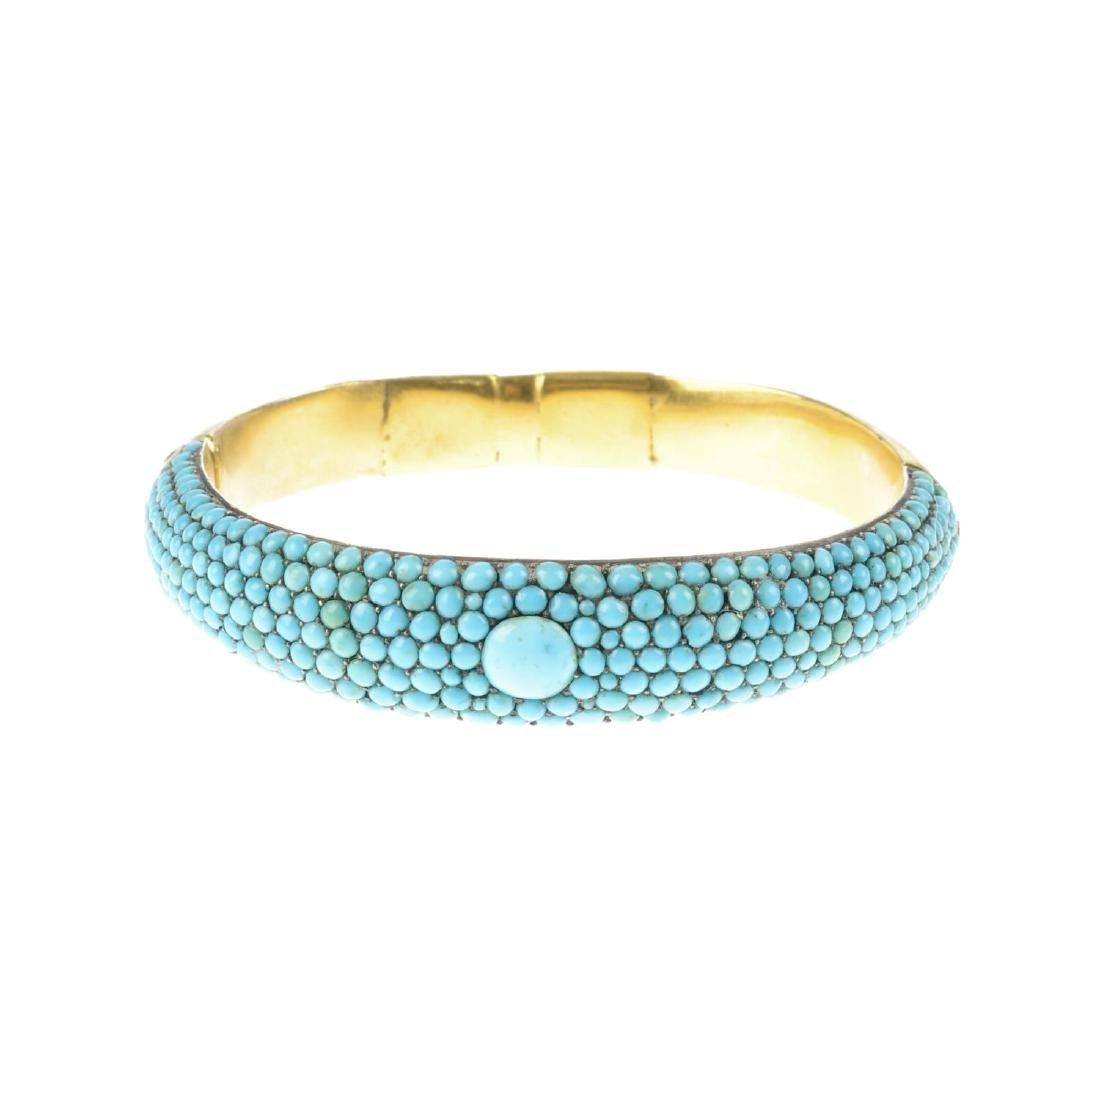 A late Victorian gold and turquoise hinged bangle. With